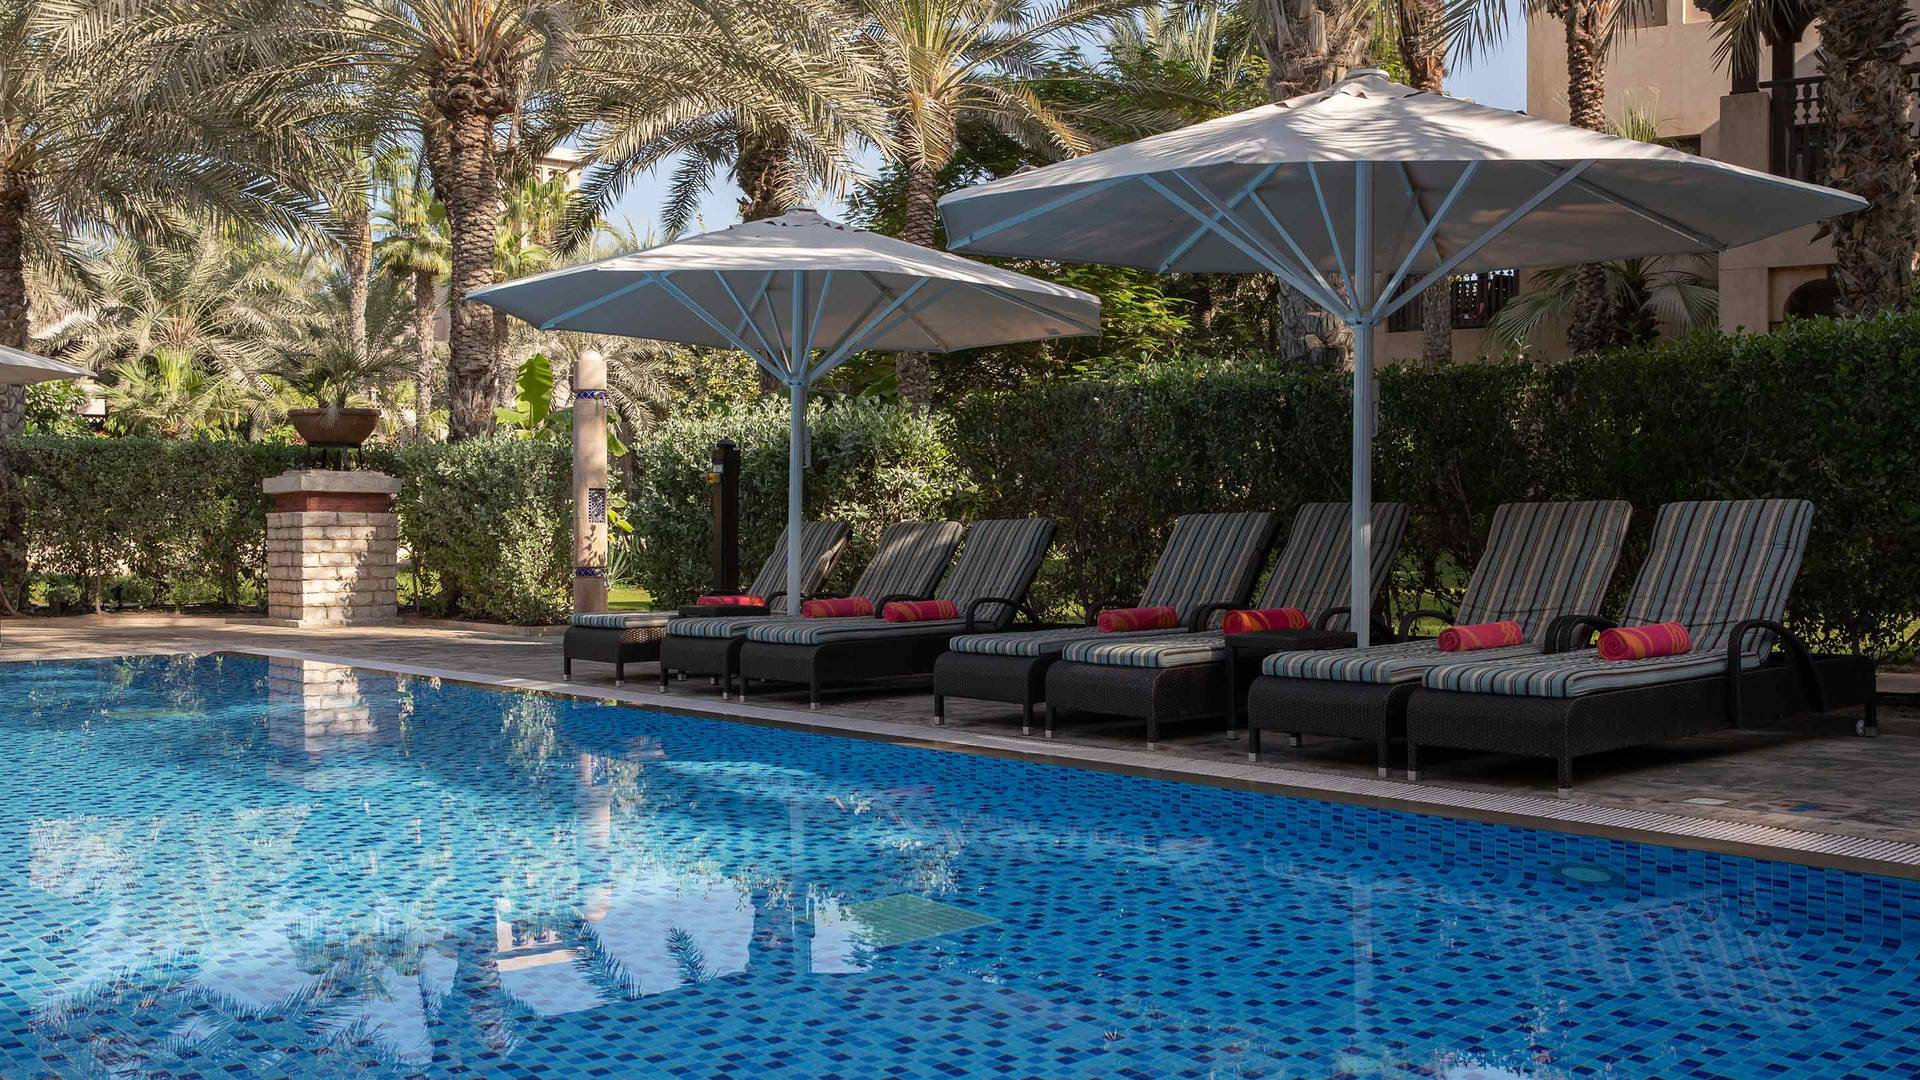 Jumeirah Dar Al Masyaf kids swimming pool_16-9